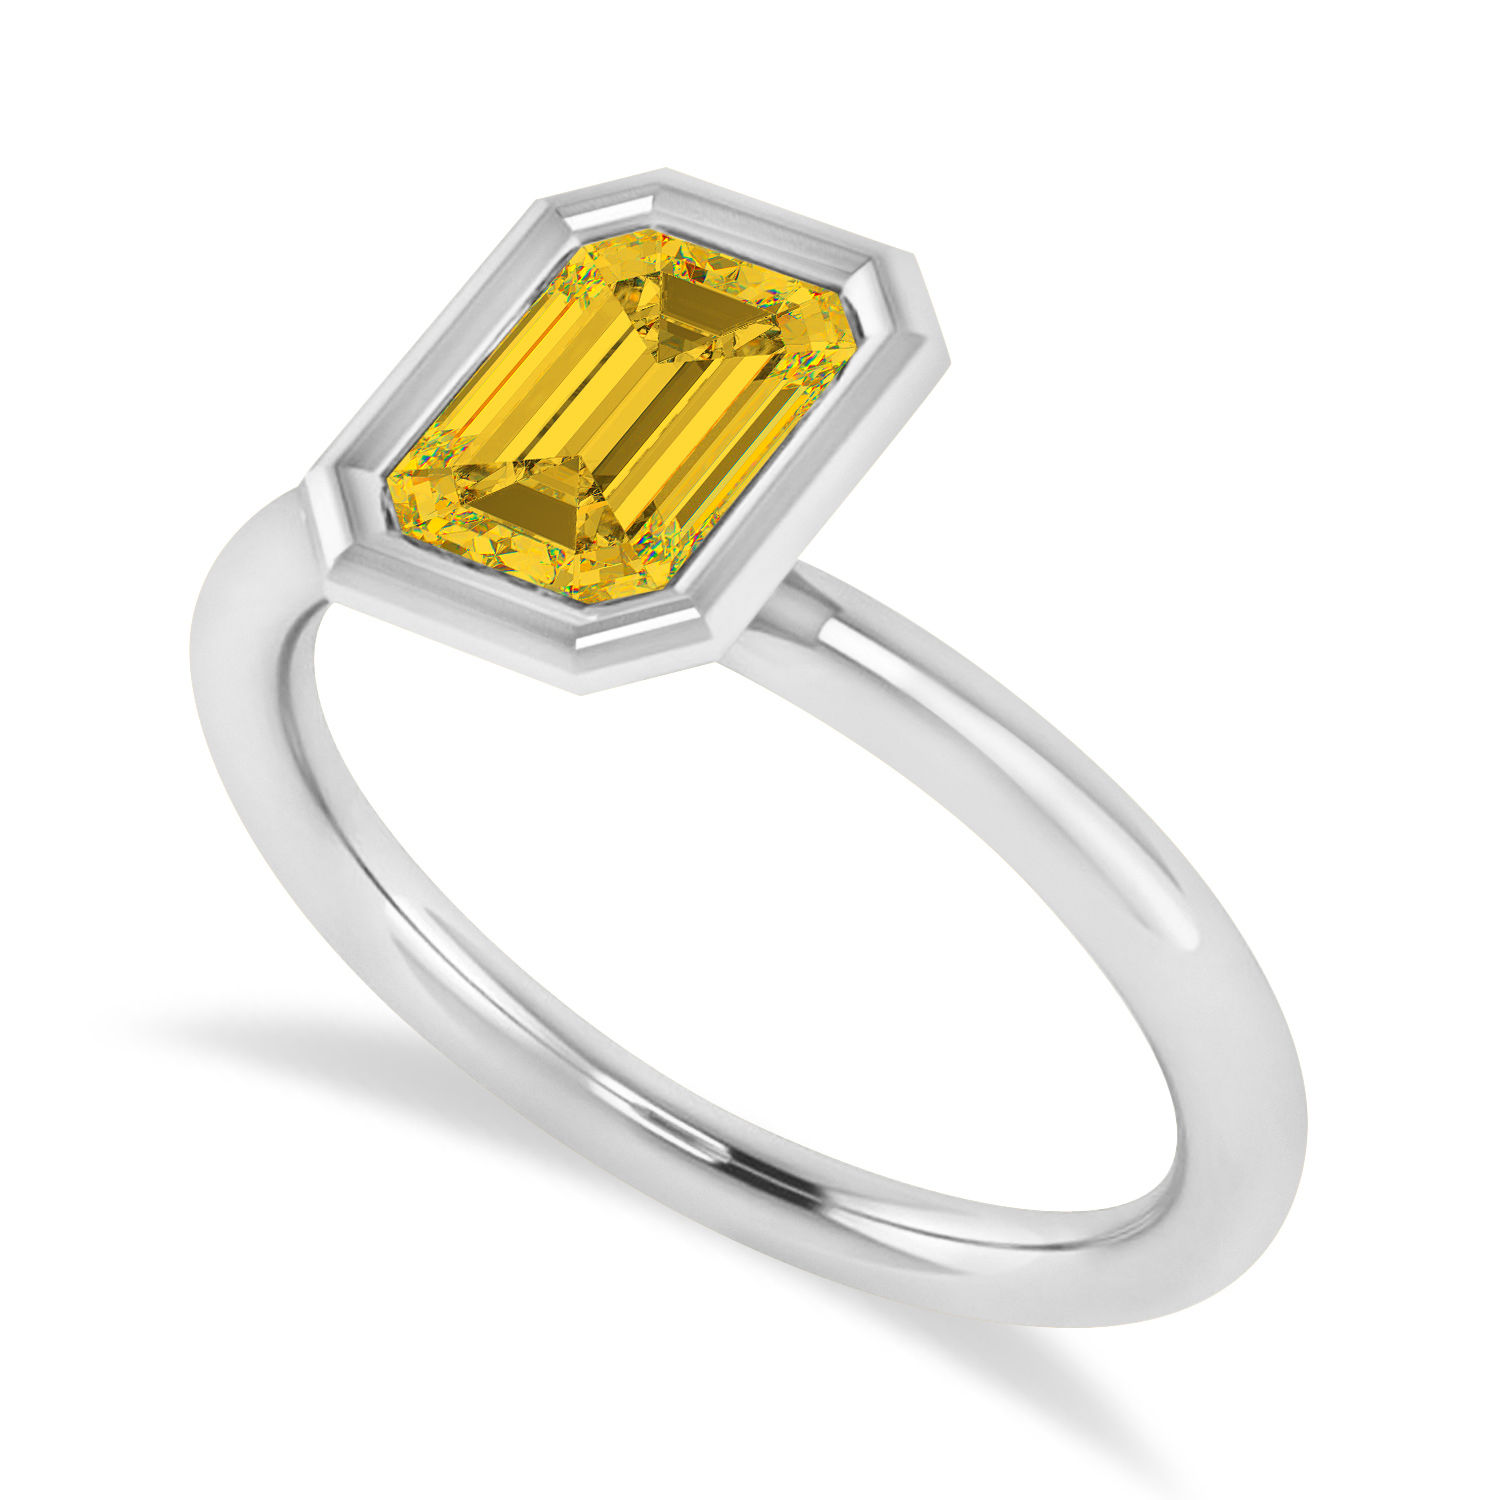 Emerald-Cut Bezel-Set Yellow Sapphire Solitaire Ring 14k White Gold (1.00 ctw)